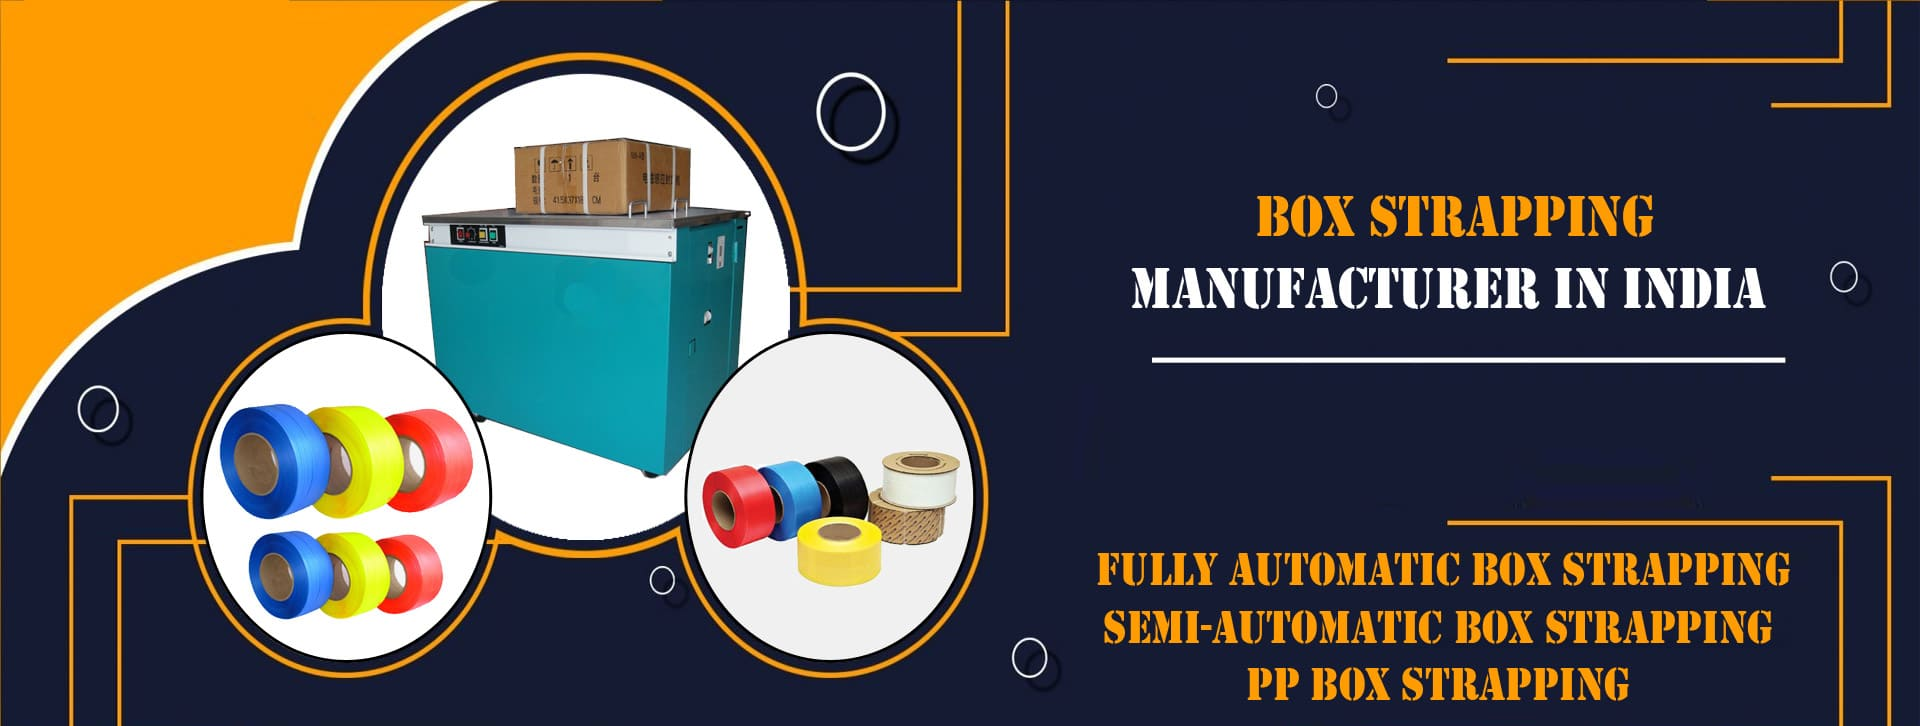 Box Strapping Manufacturer, Supplier and Exporter in Ahmedabad, Gujarat, India